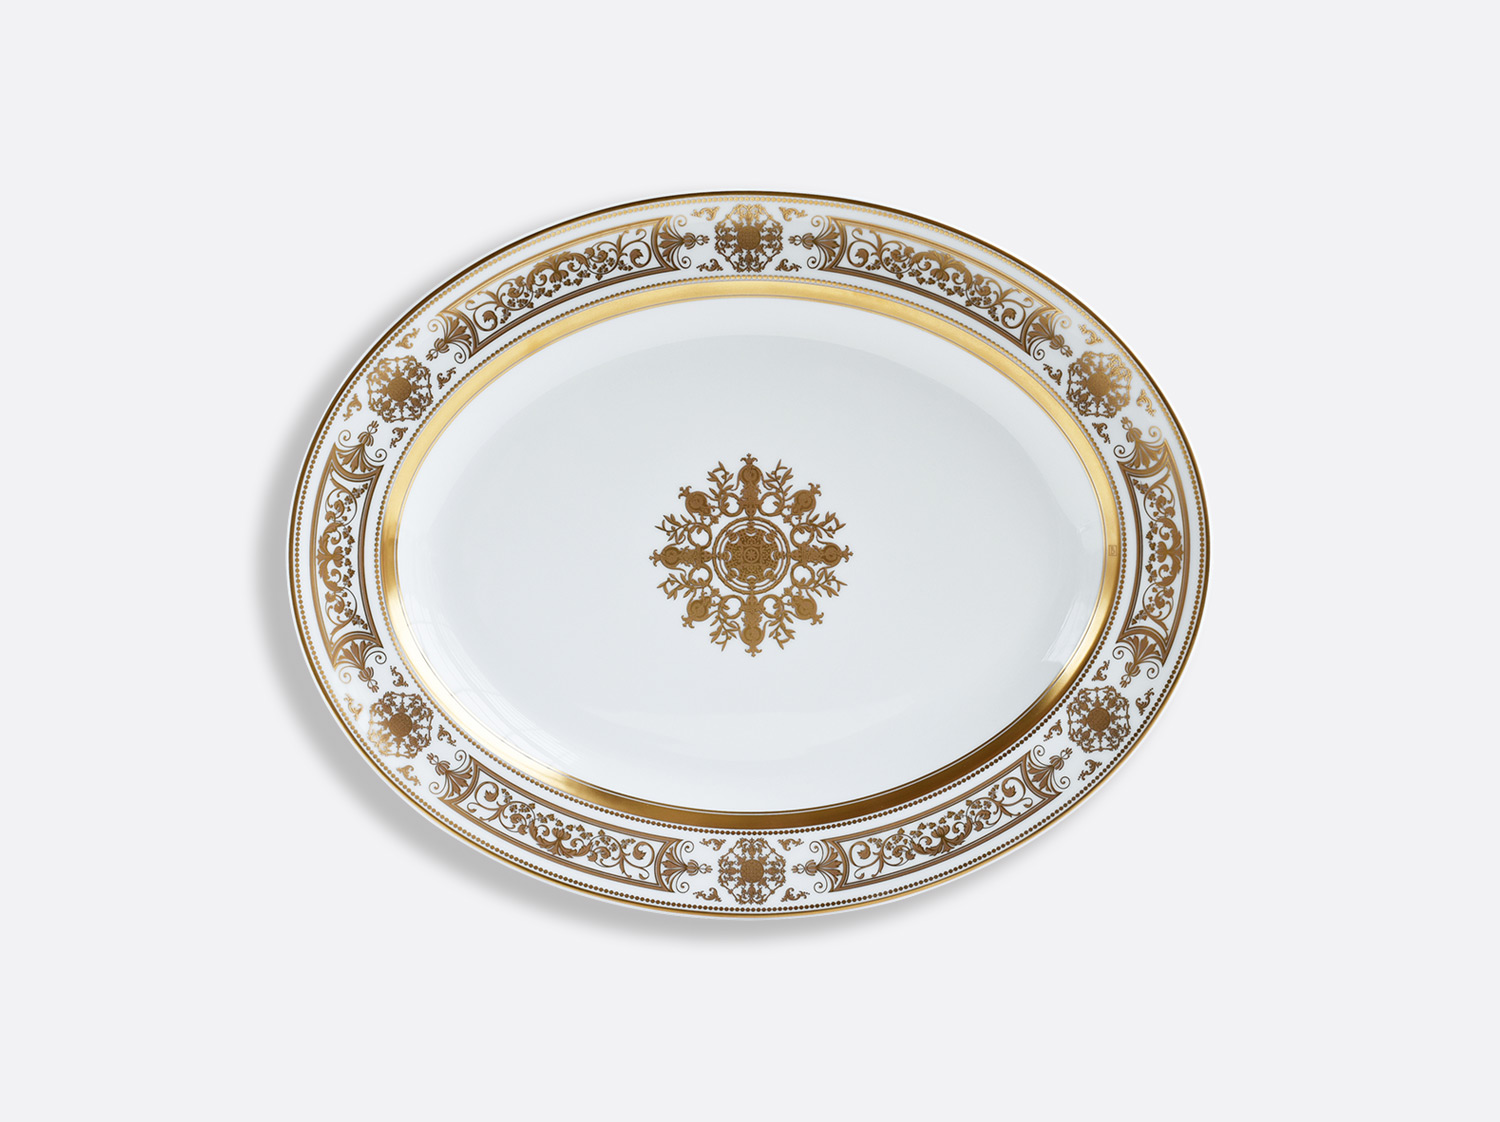 Plat ovale 38 cm en porcelaine de la collection Aux Rois Or Bernardaud